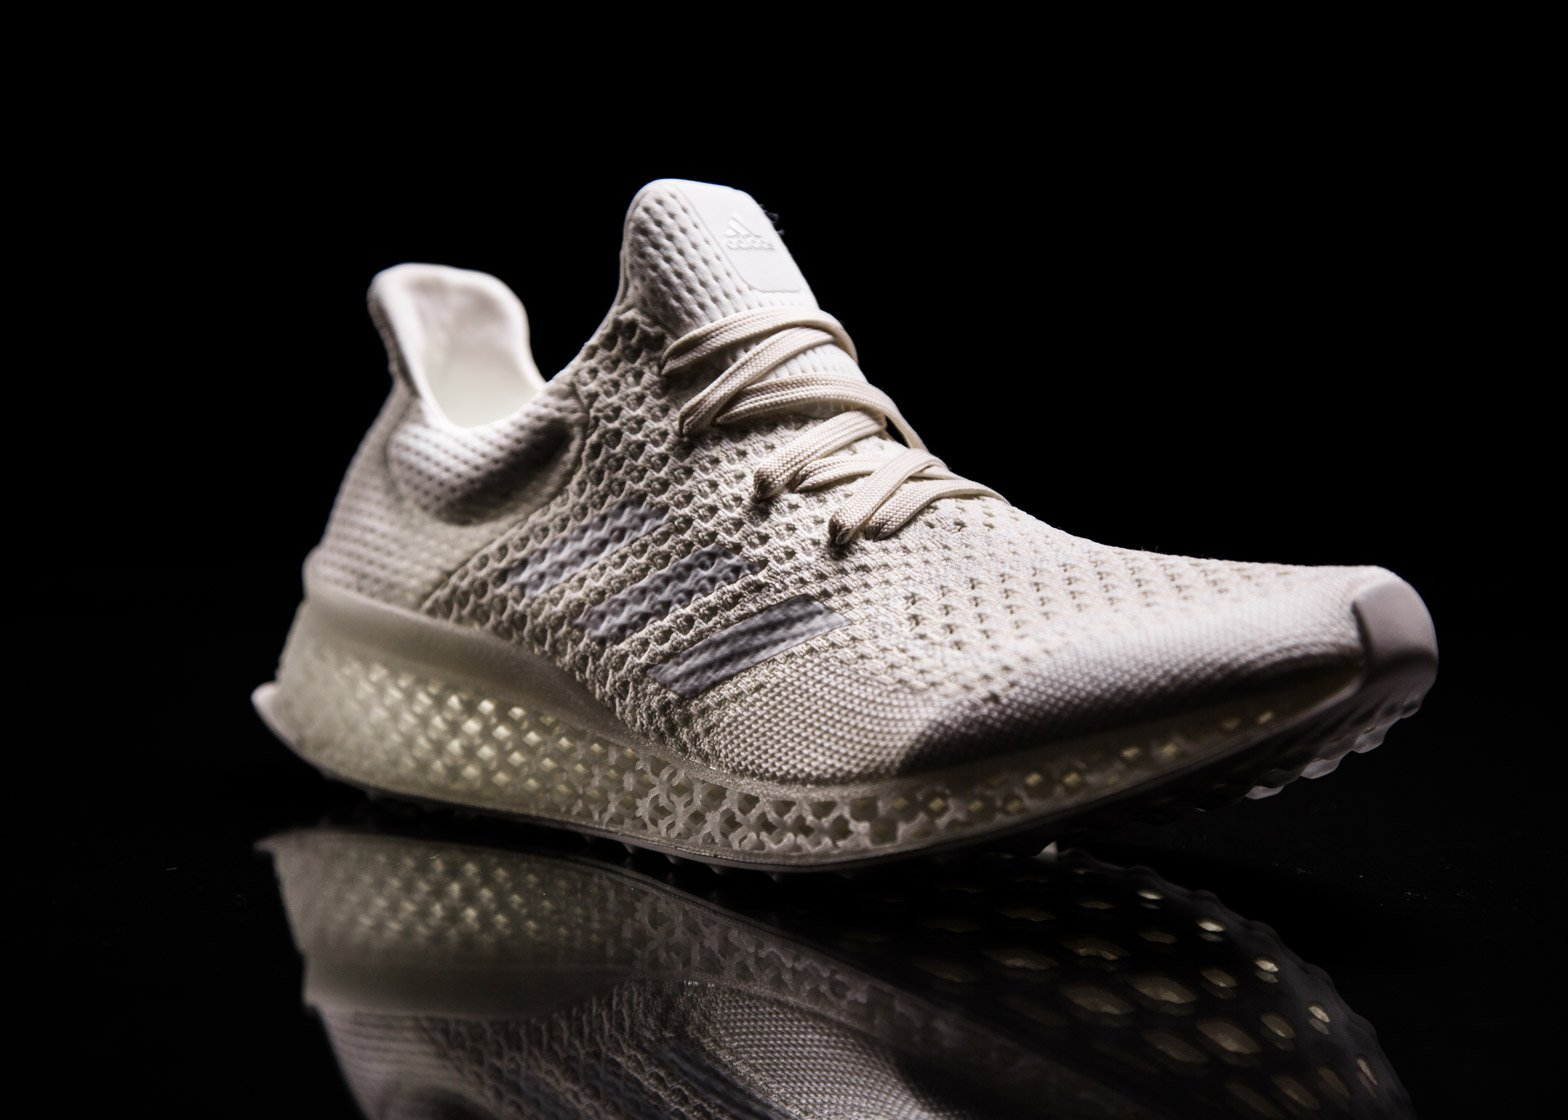 Future Craft 3D by Adidas